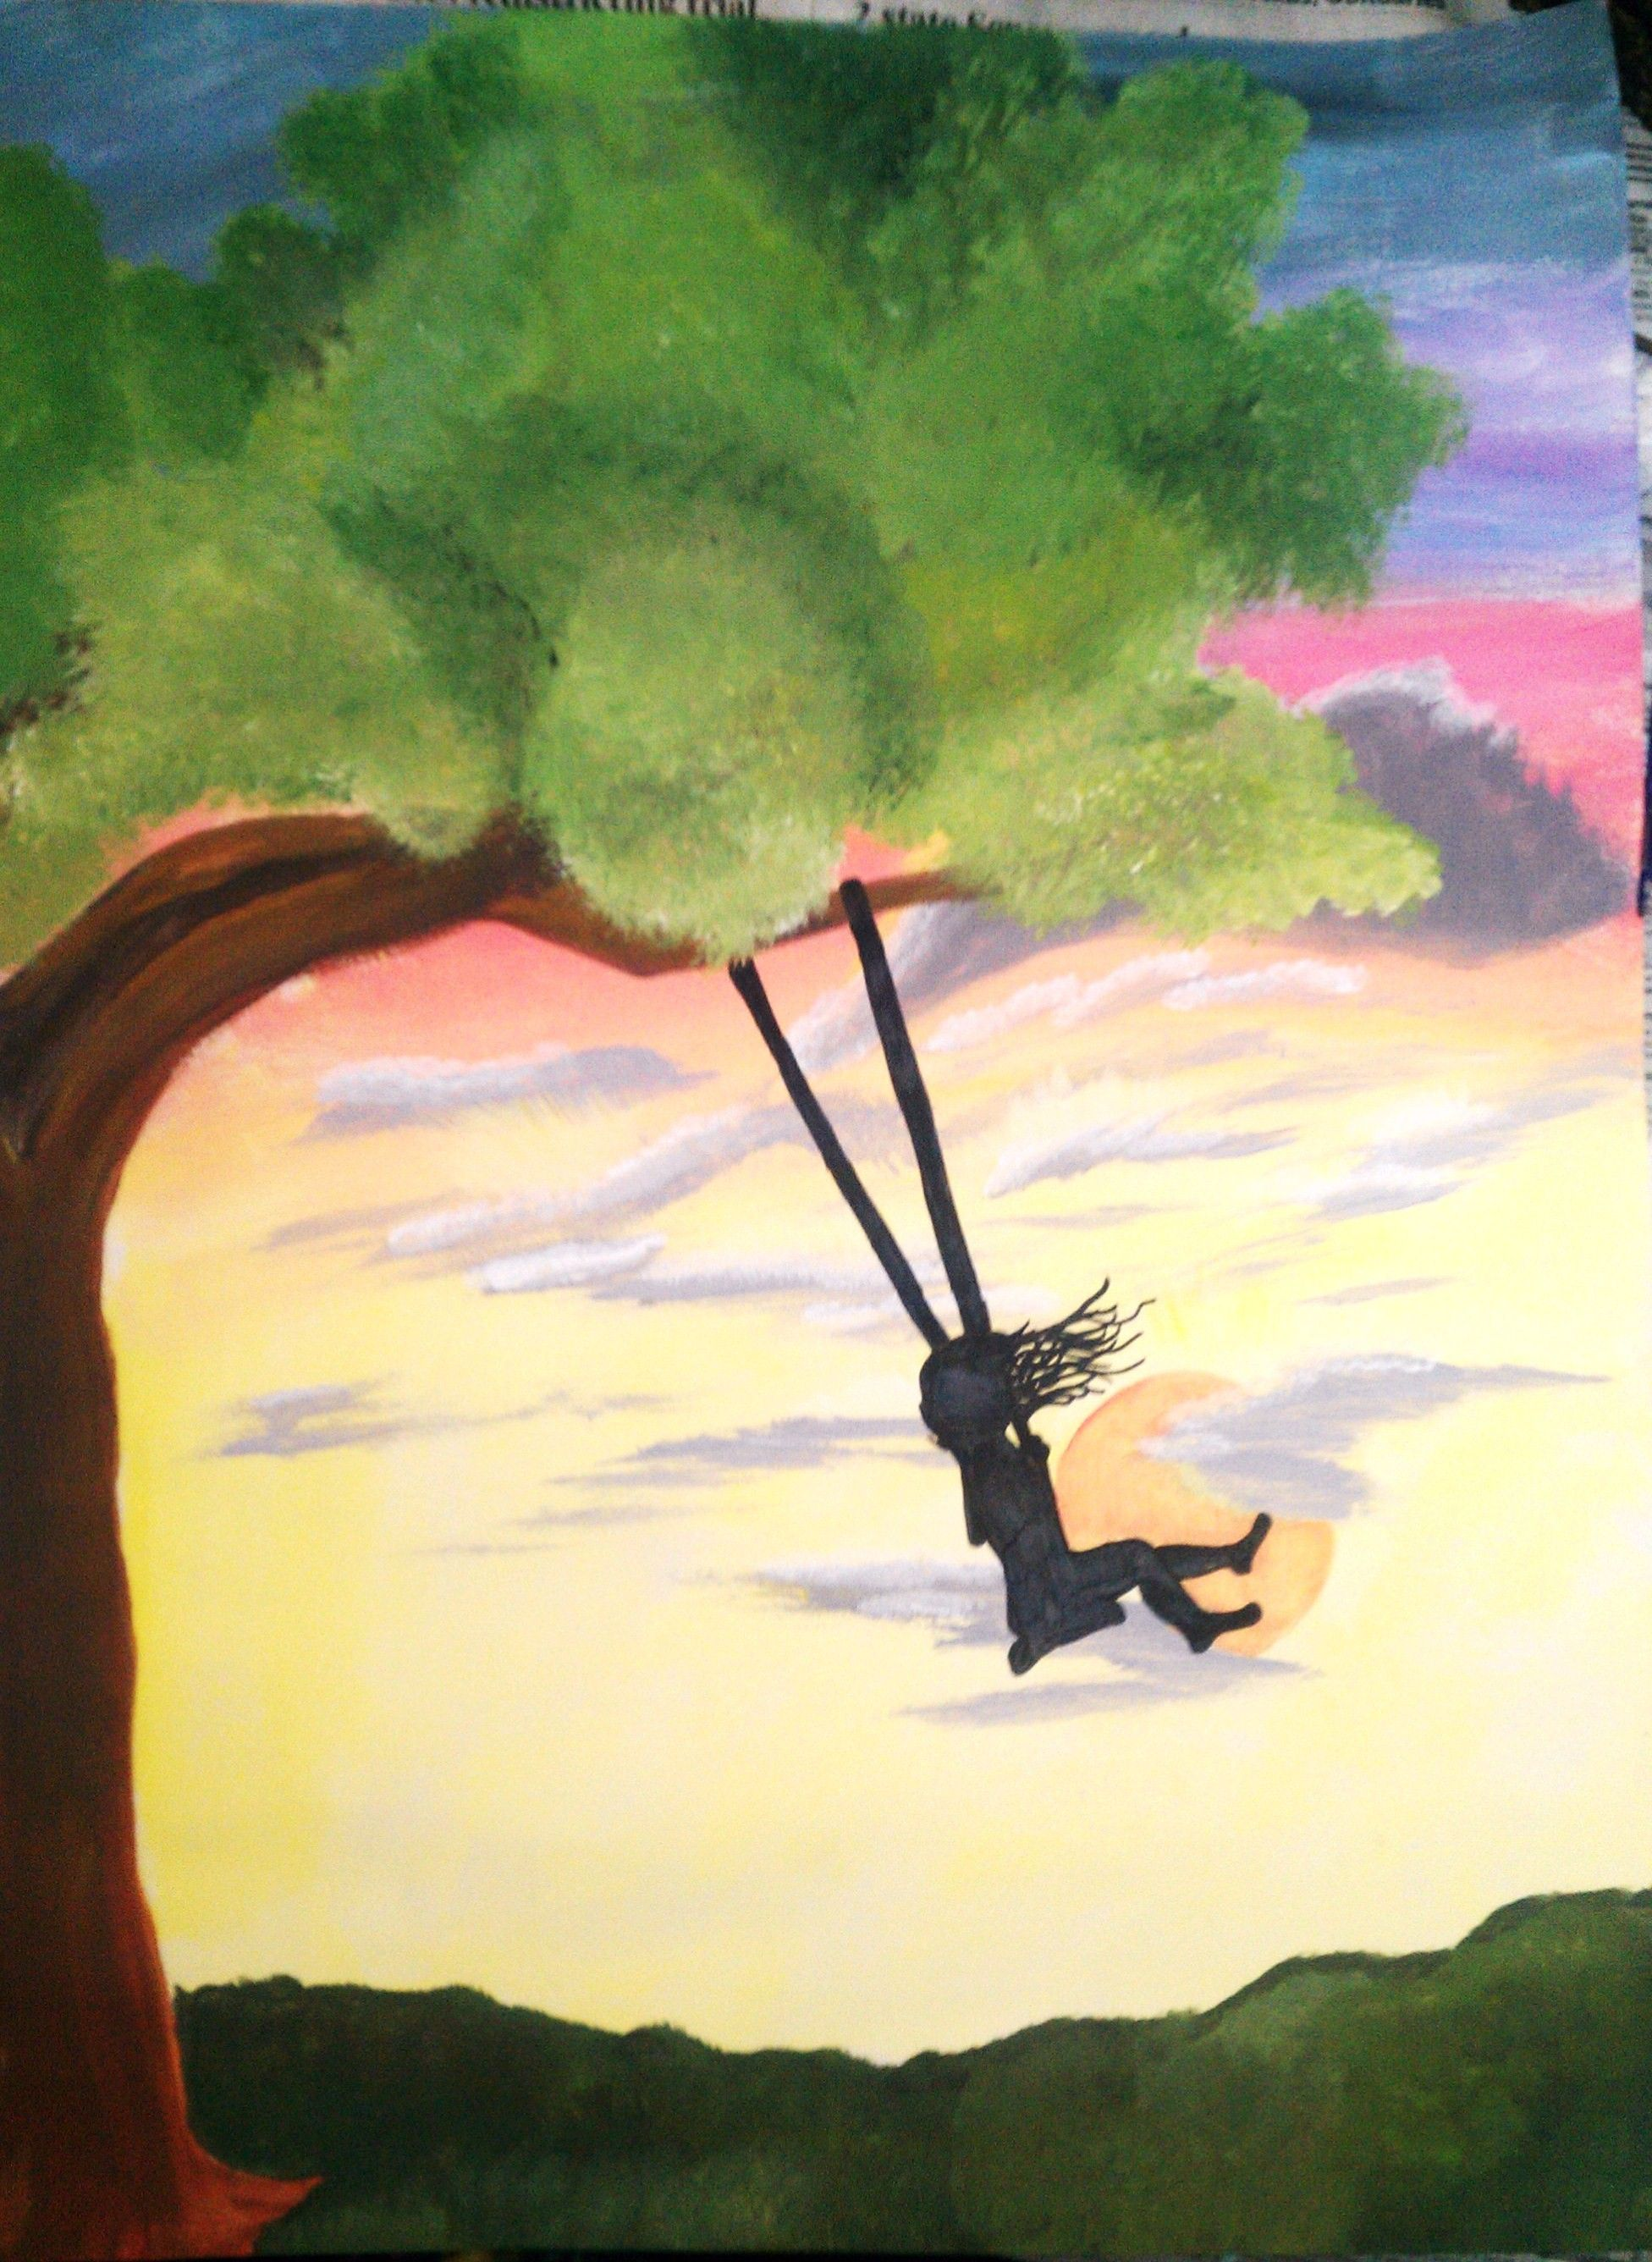 Girl Swinging On A Tree Silhouette By Kristine Euler